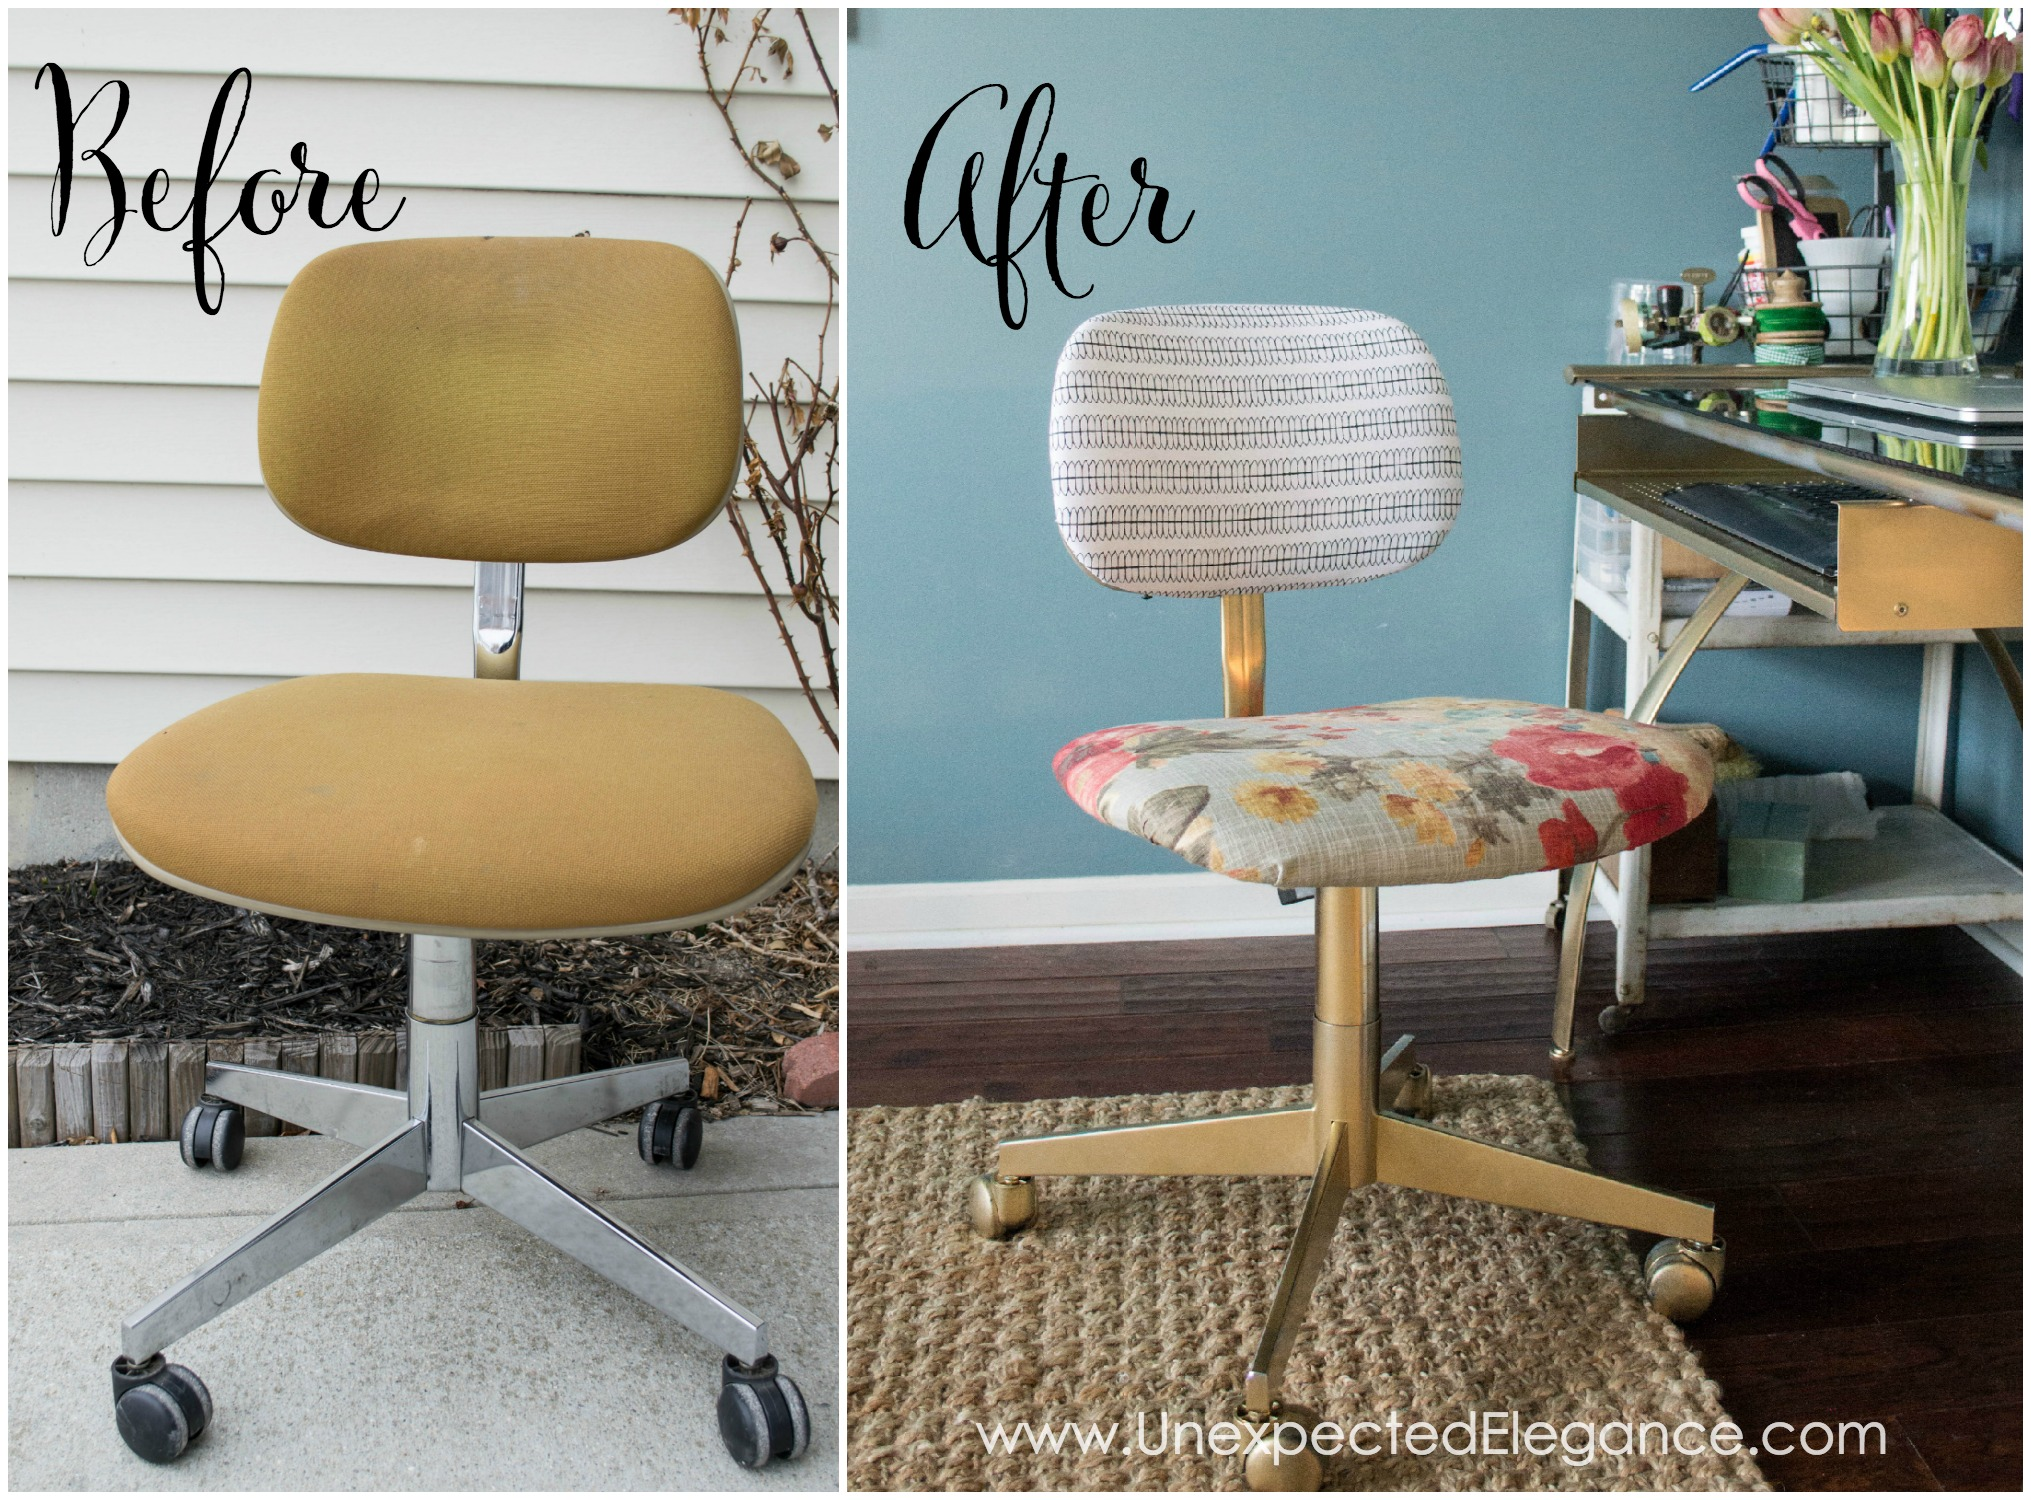 This chair transformation only cost a few dollars and made a big impact!  Check out the before and after.